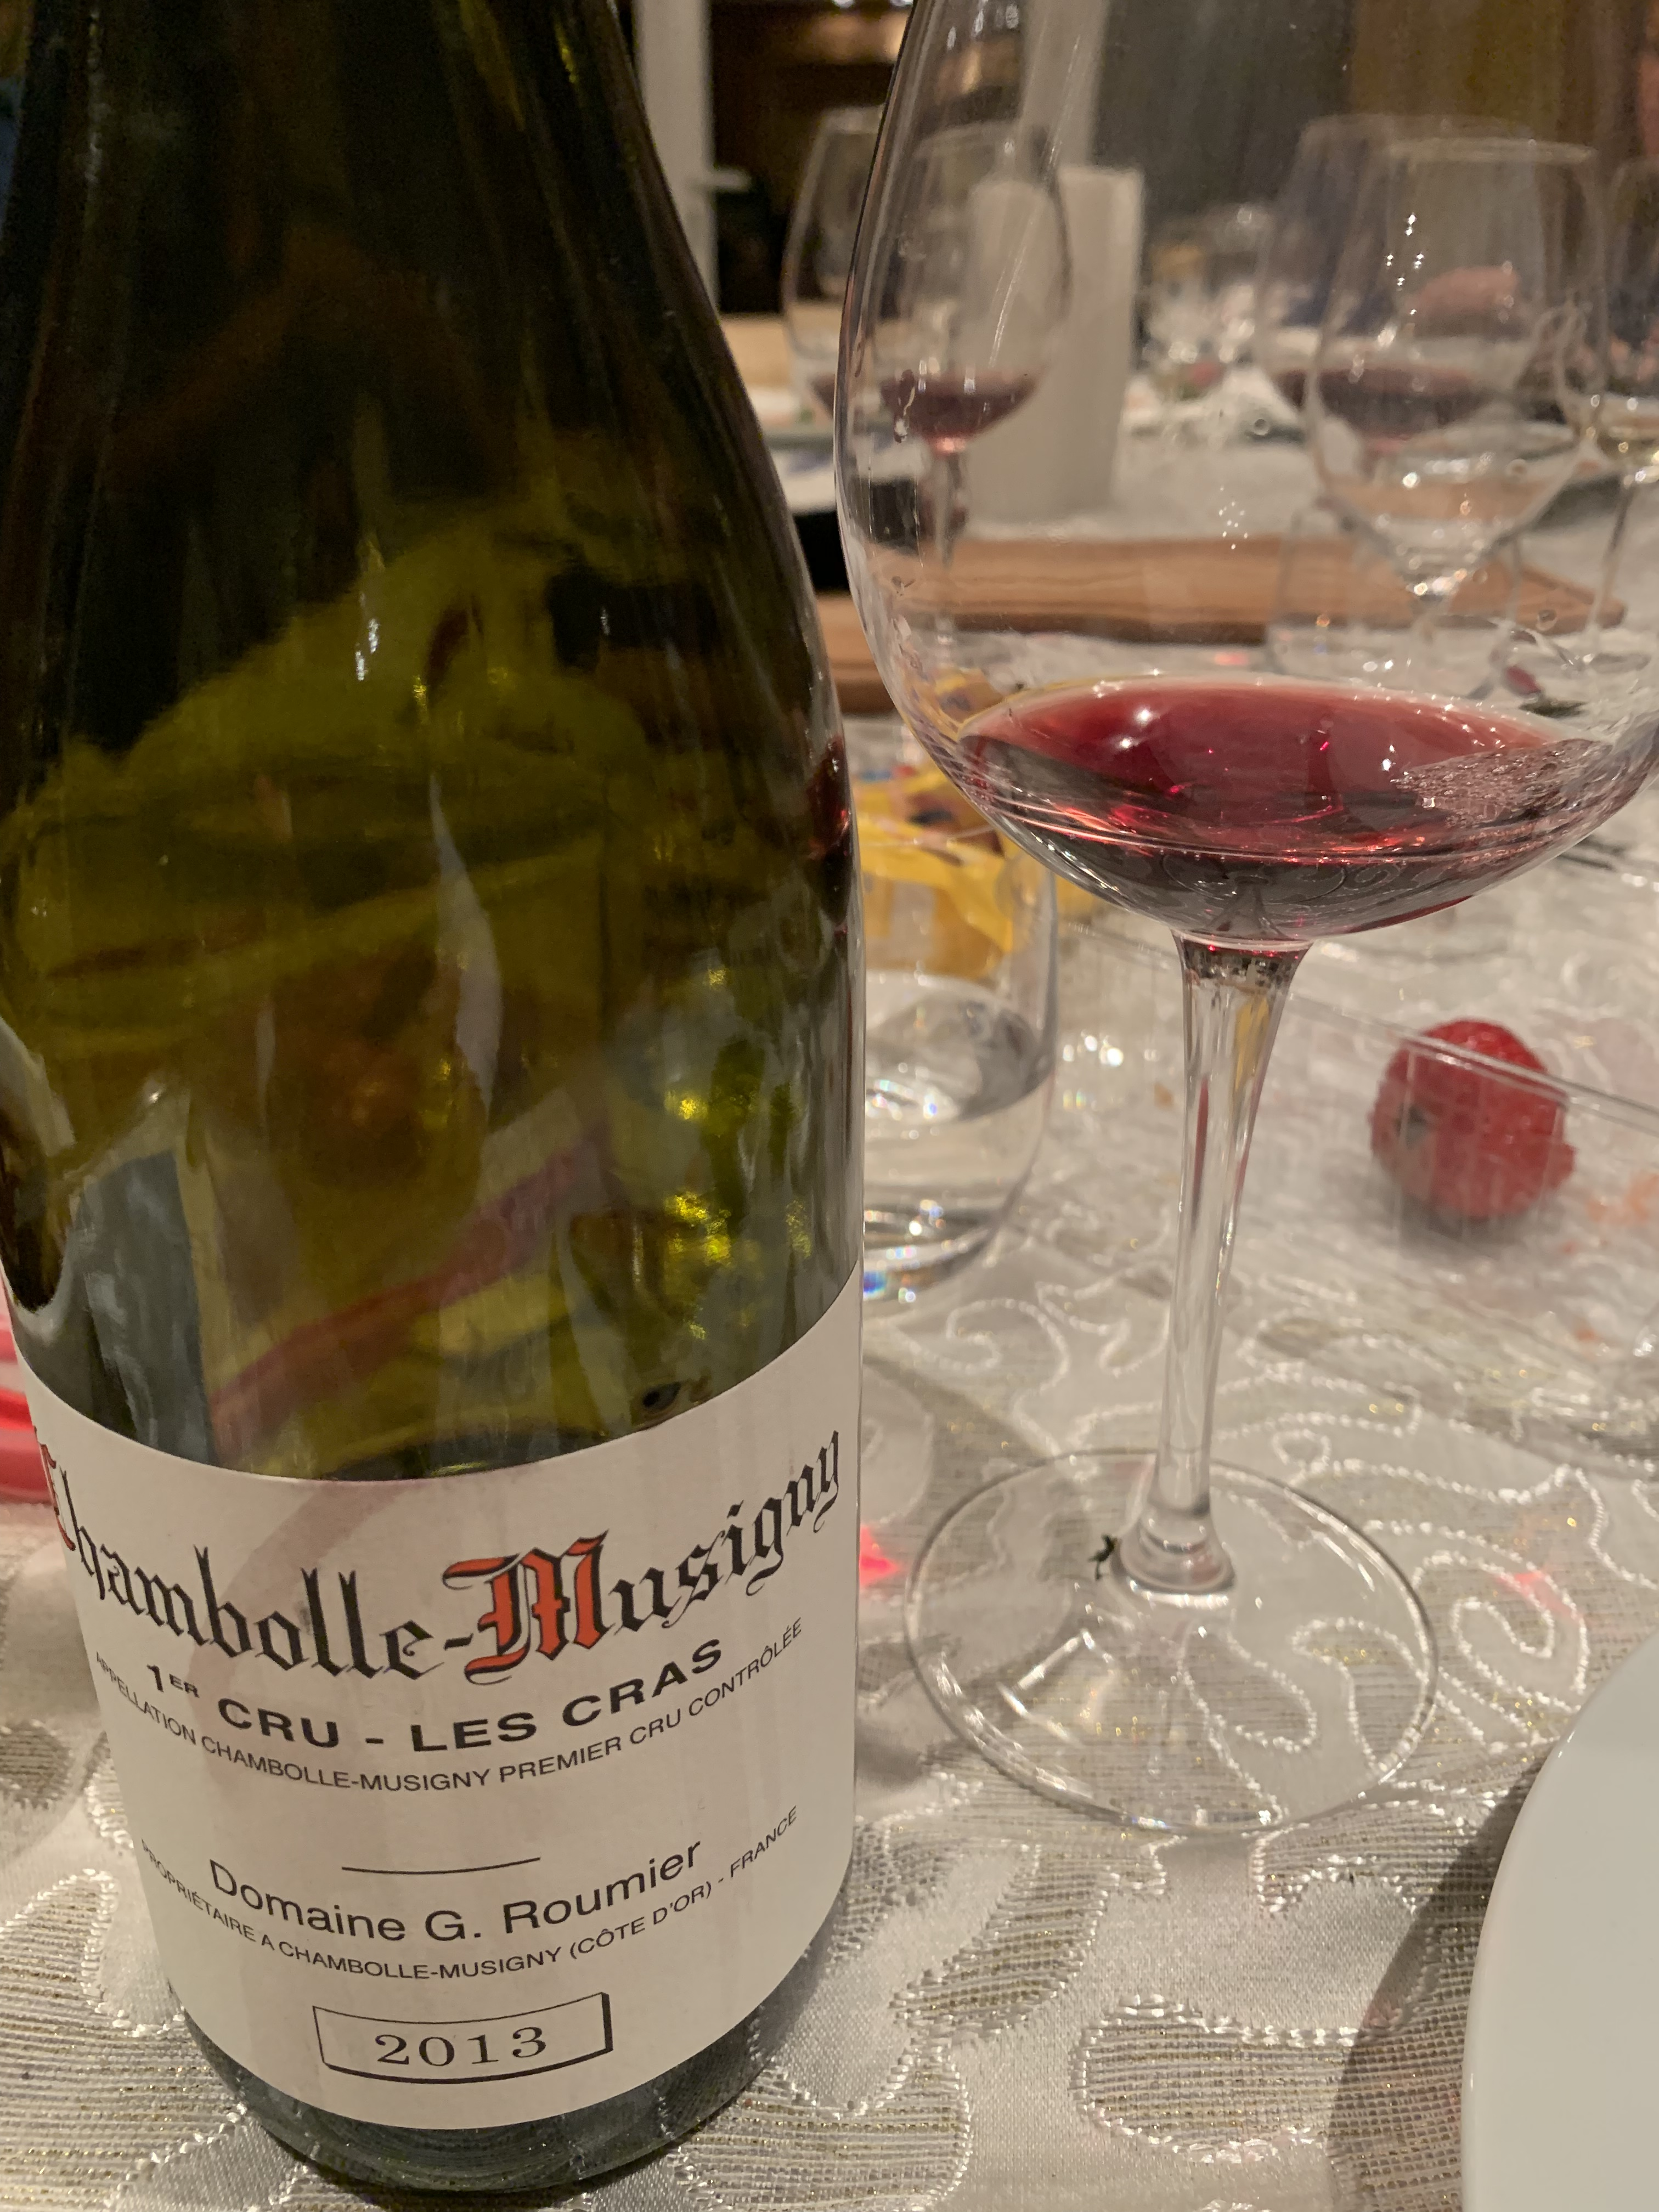 Chambolle Musigny 1er Cru Les Cras 2013